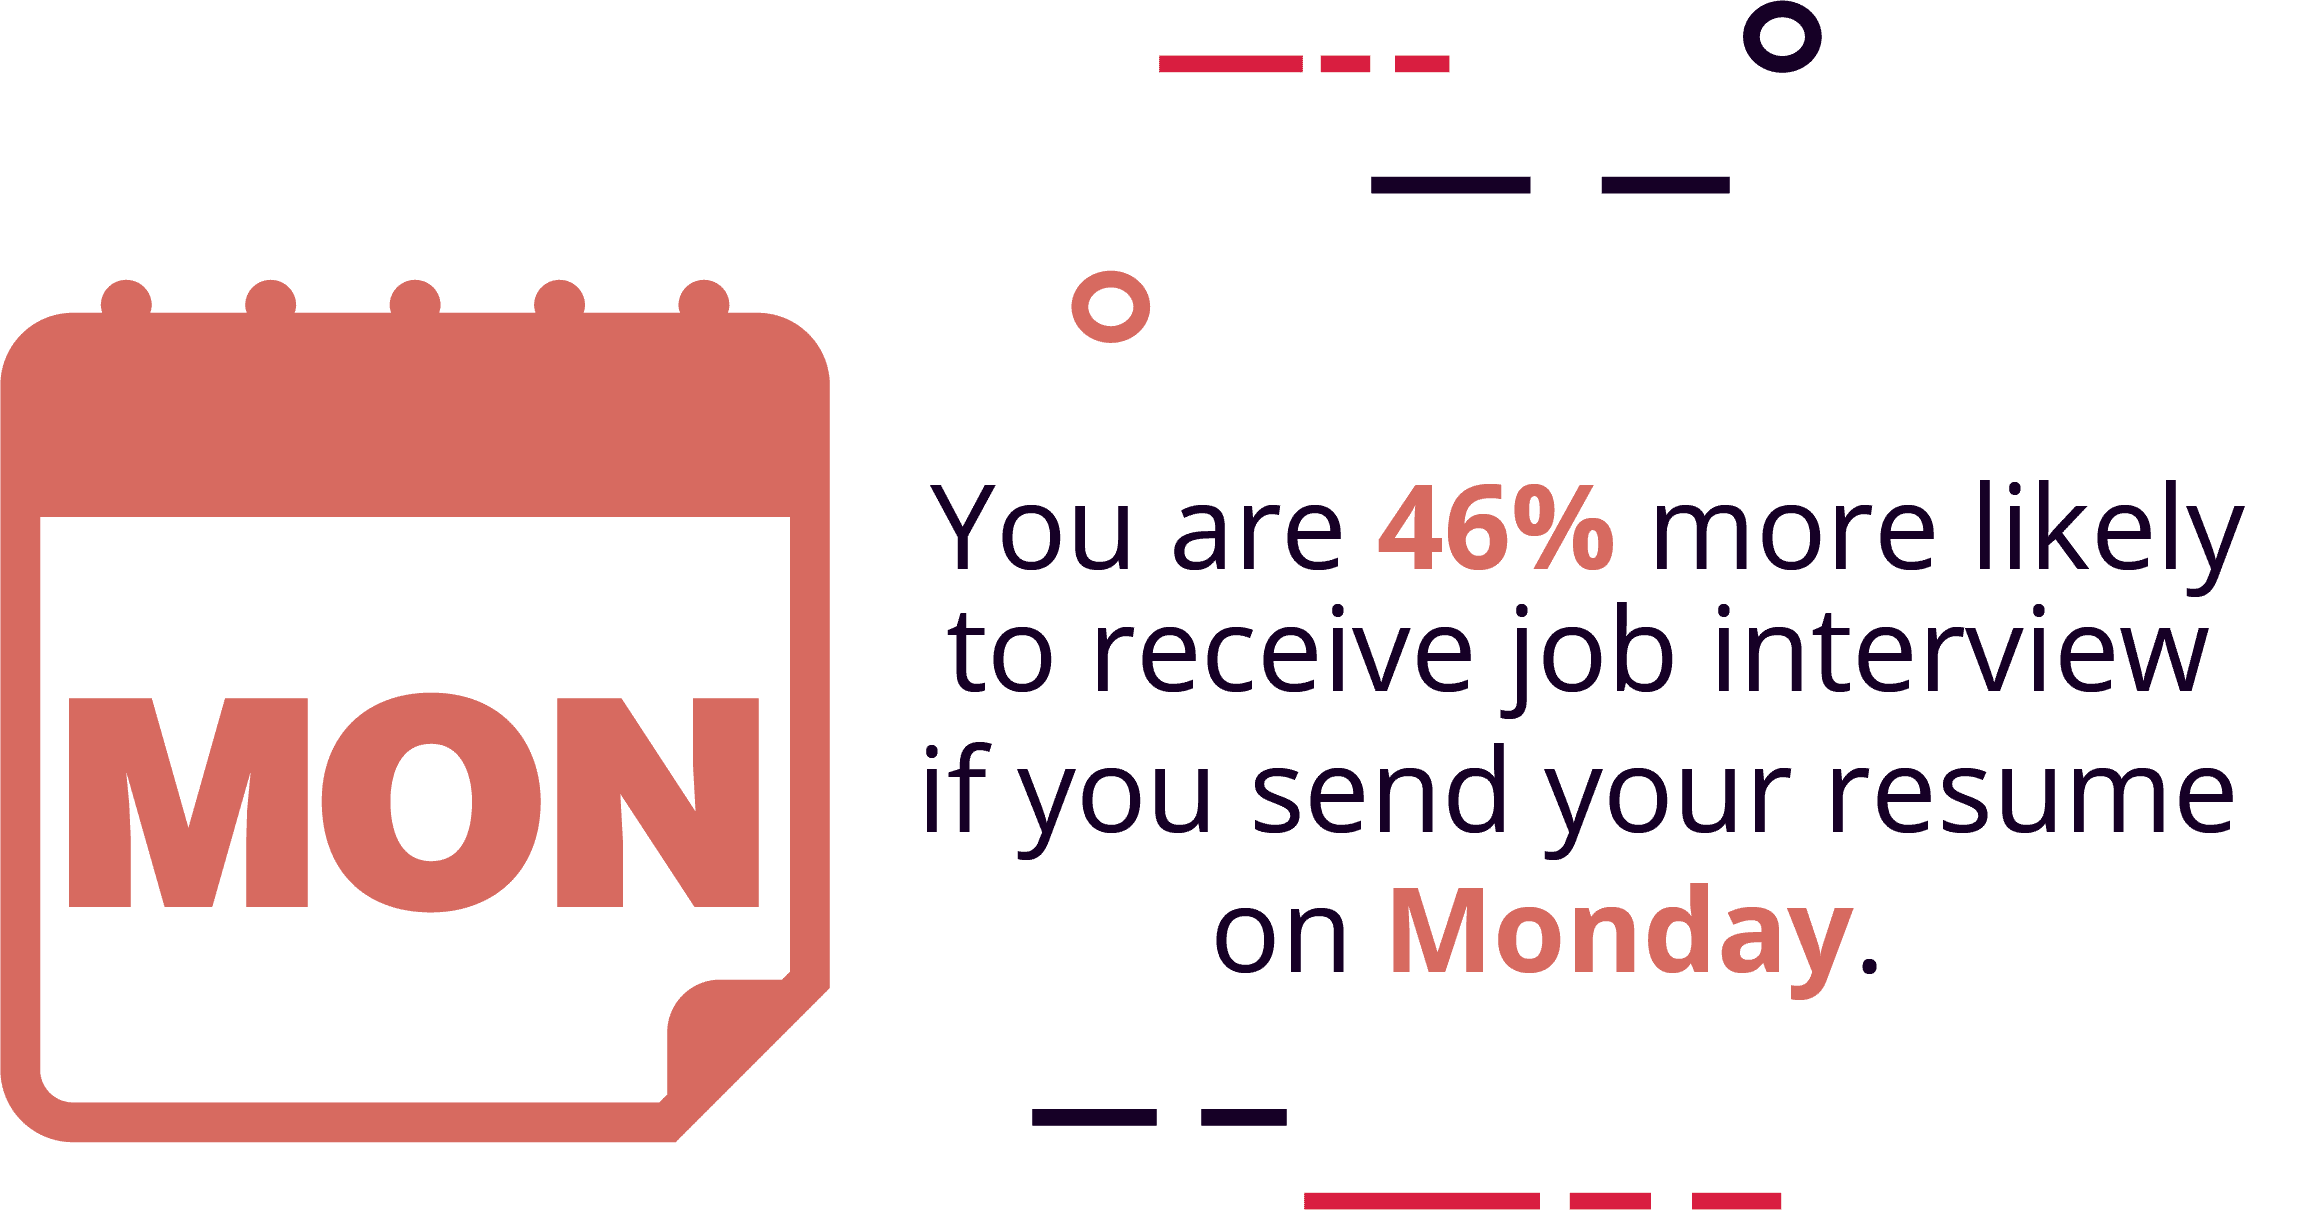 Resumes that are sent on a Monday are more likely to be read